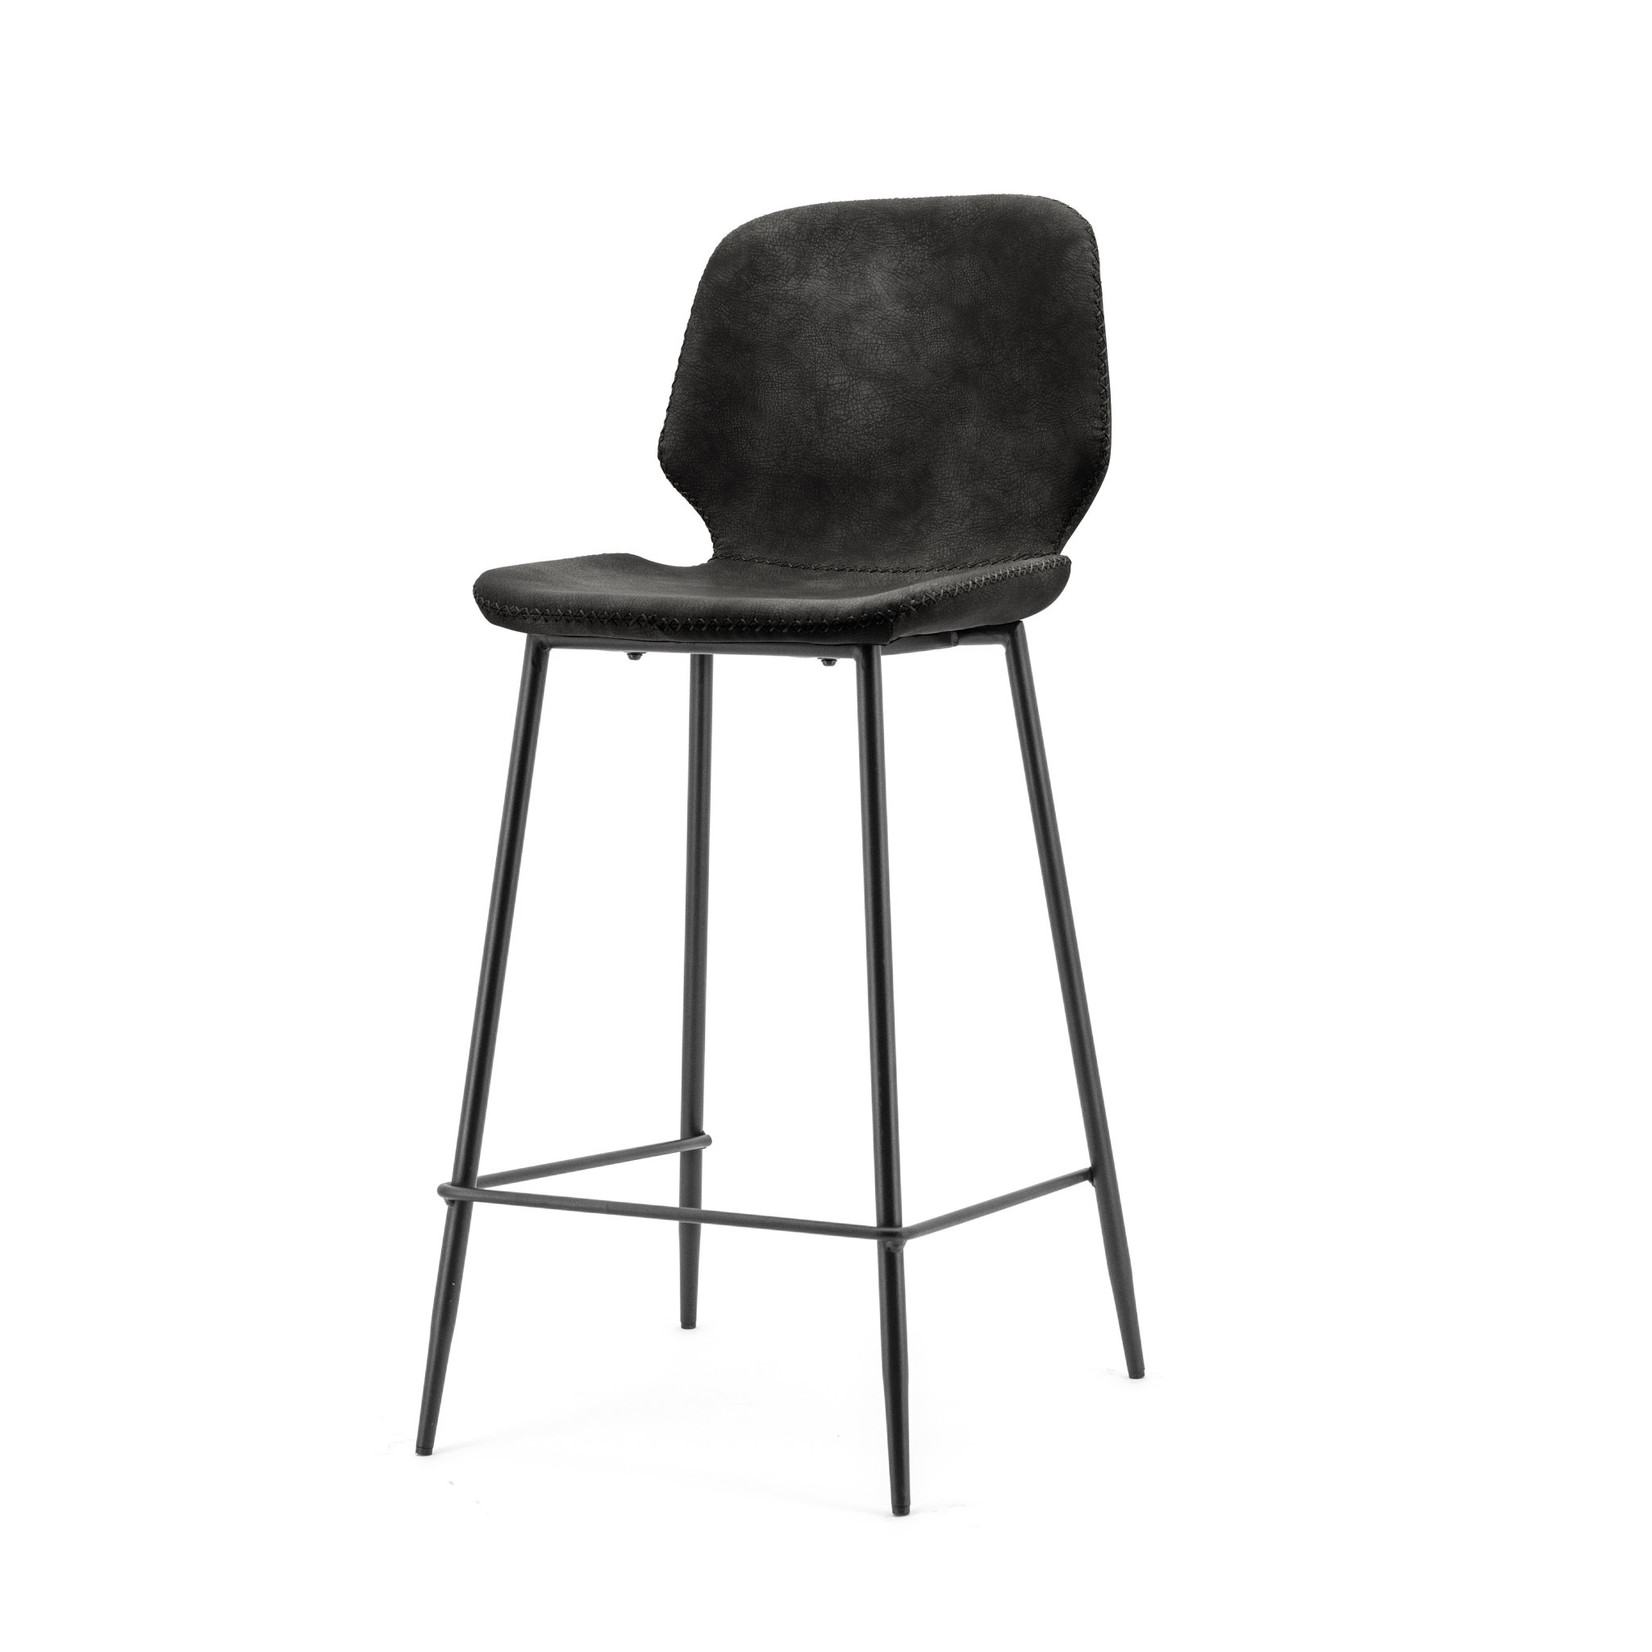 By Boo By Boo Barchair Seashell low - black